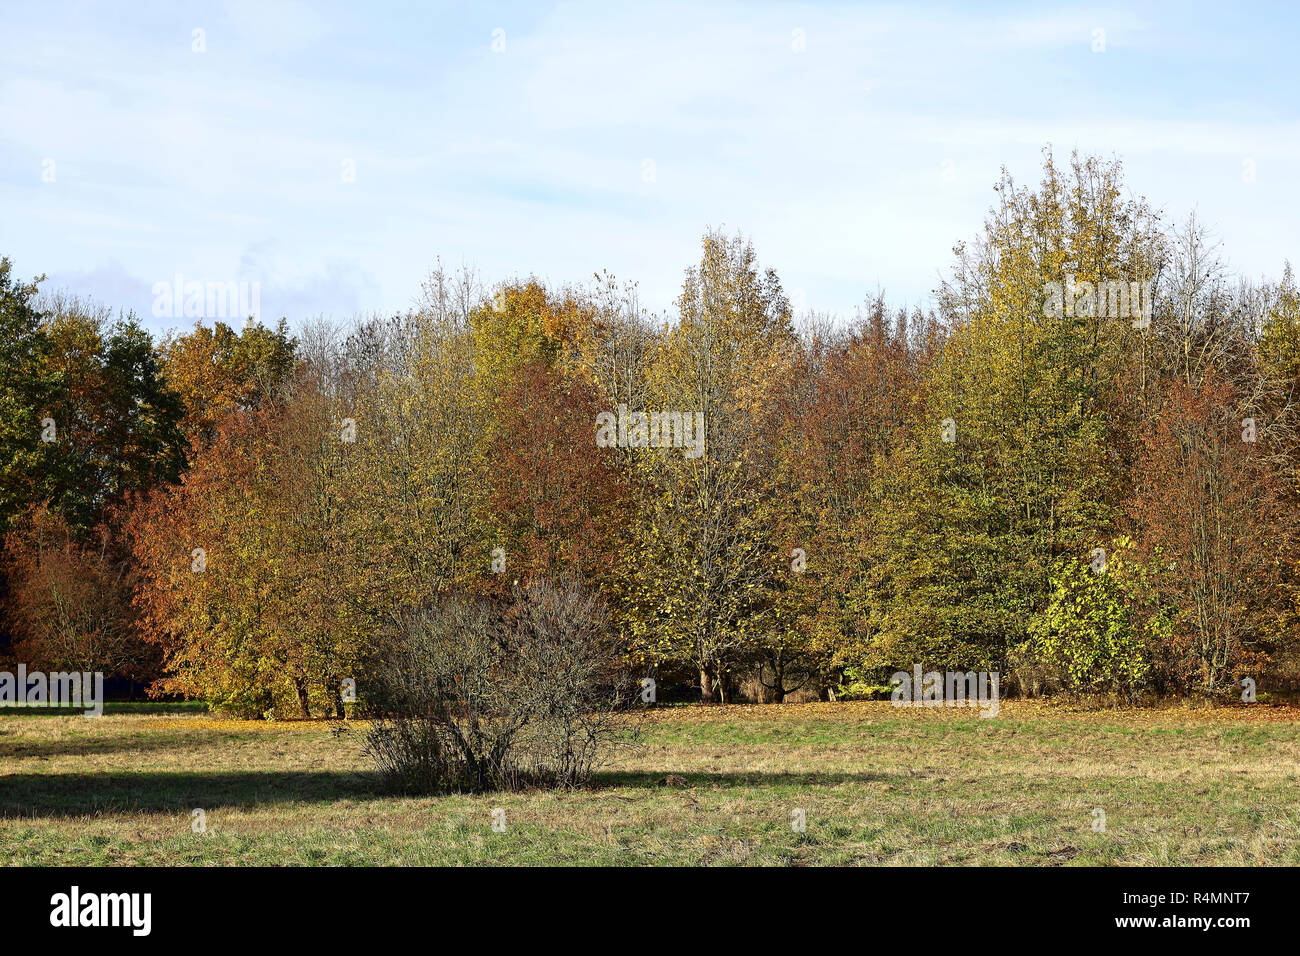 Riparian forest in autumn colours - Stock Image